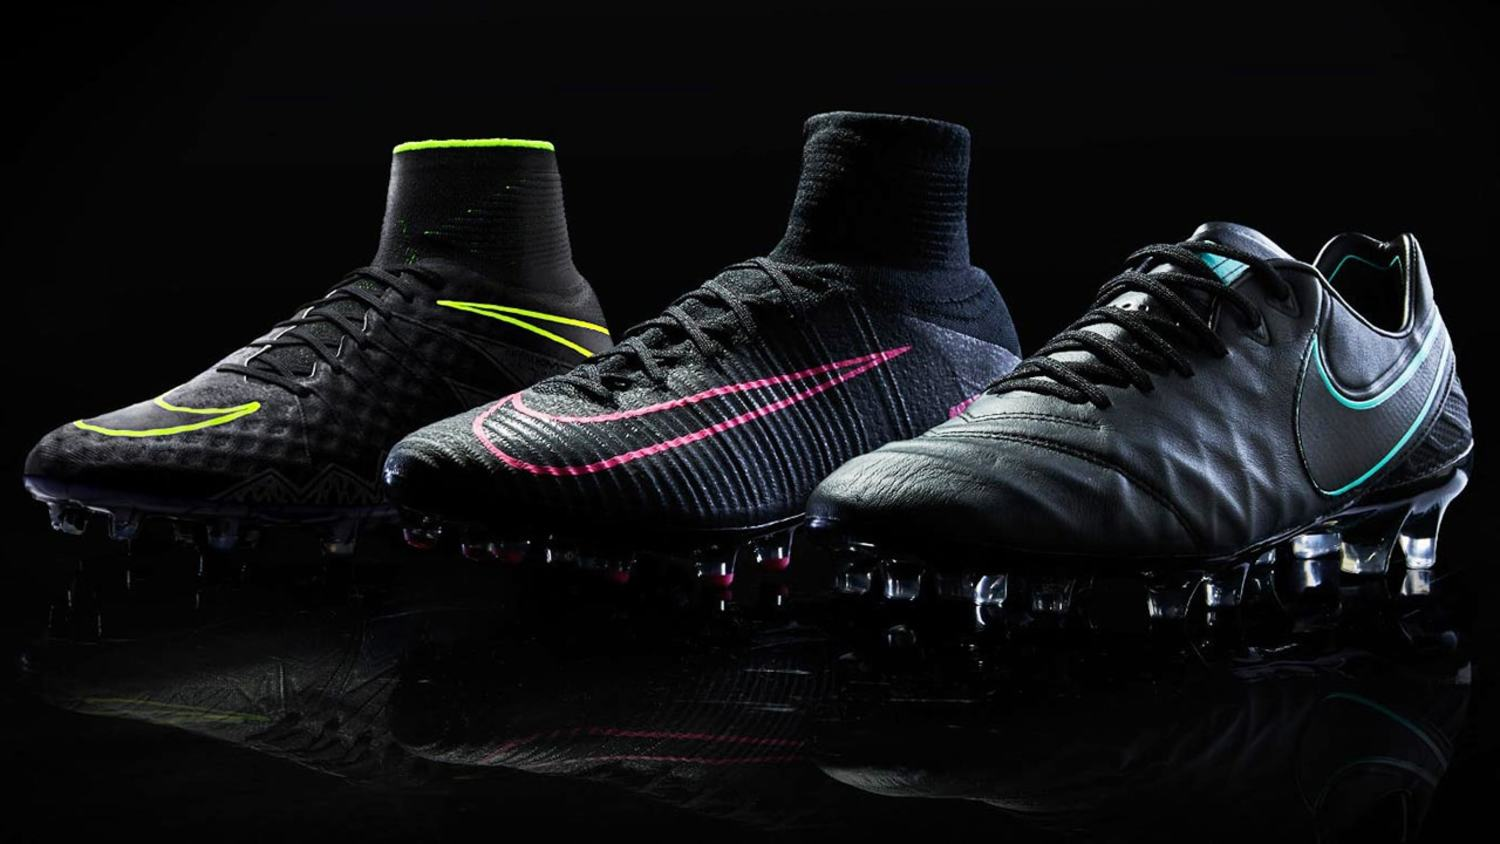 Nike Release Classy 'Pitch Dark' Boot Collection